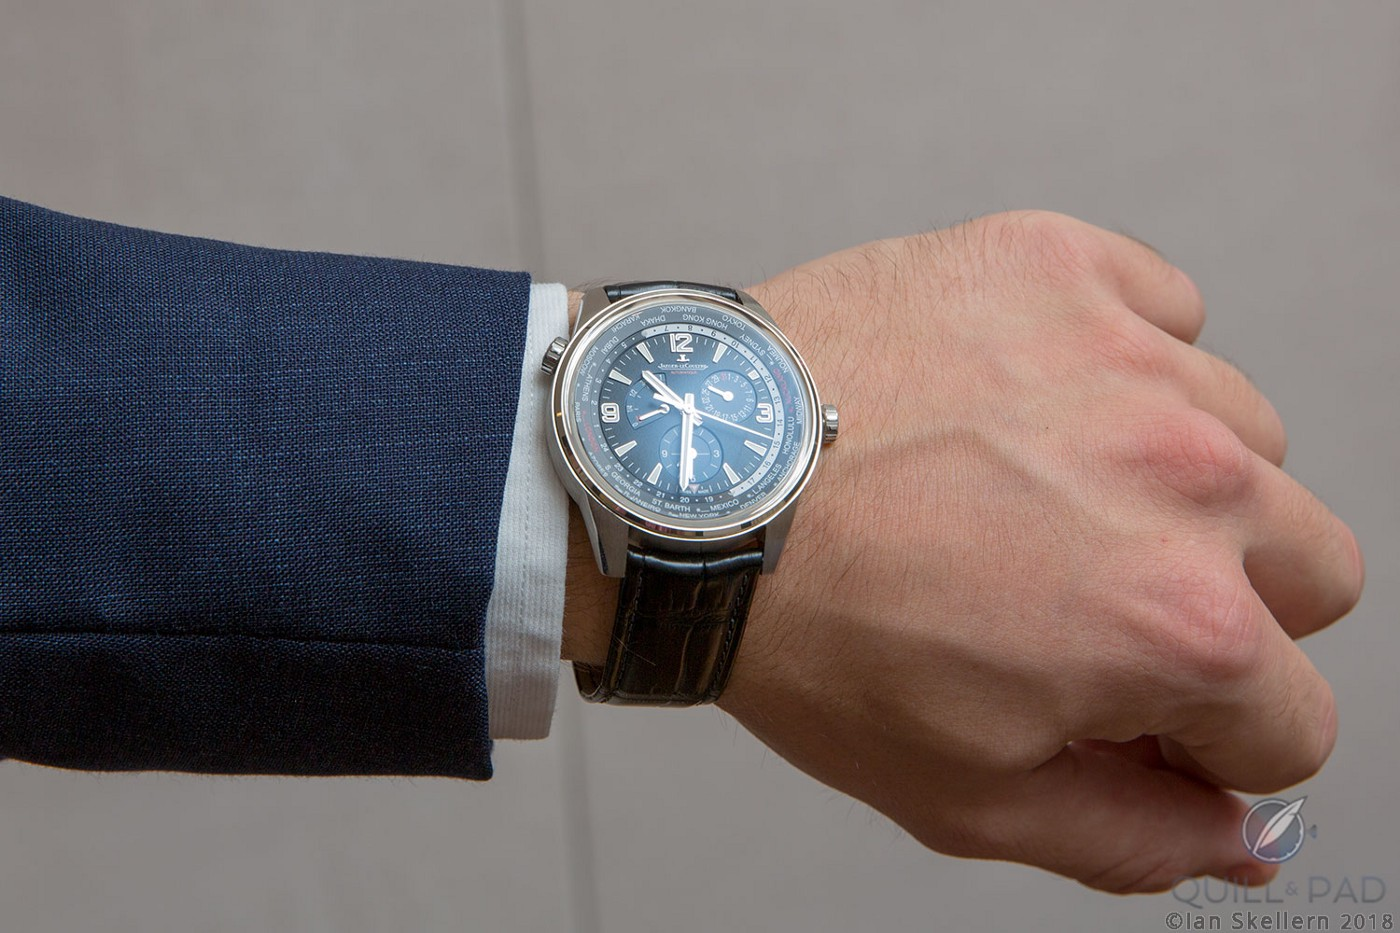 Jaeger-LeCoultre Polaris Geographic on the wrist